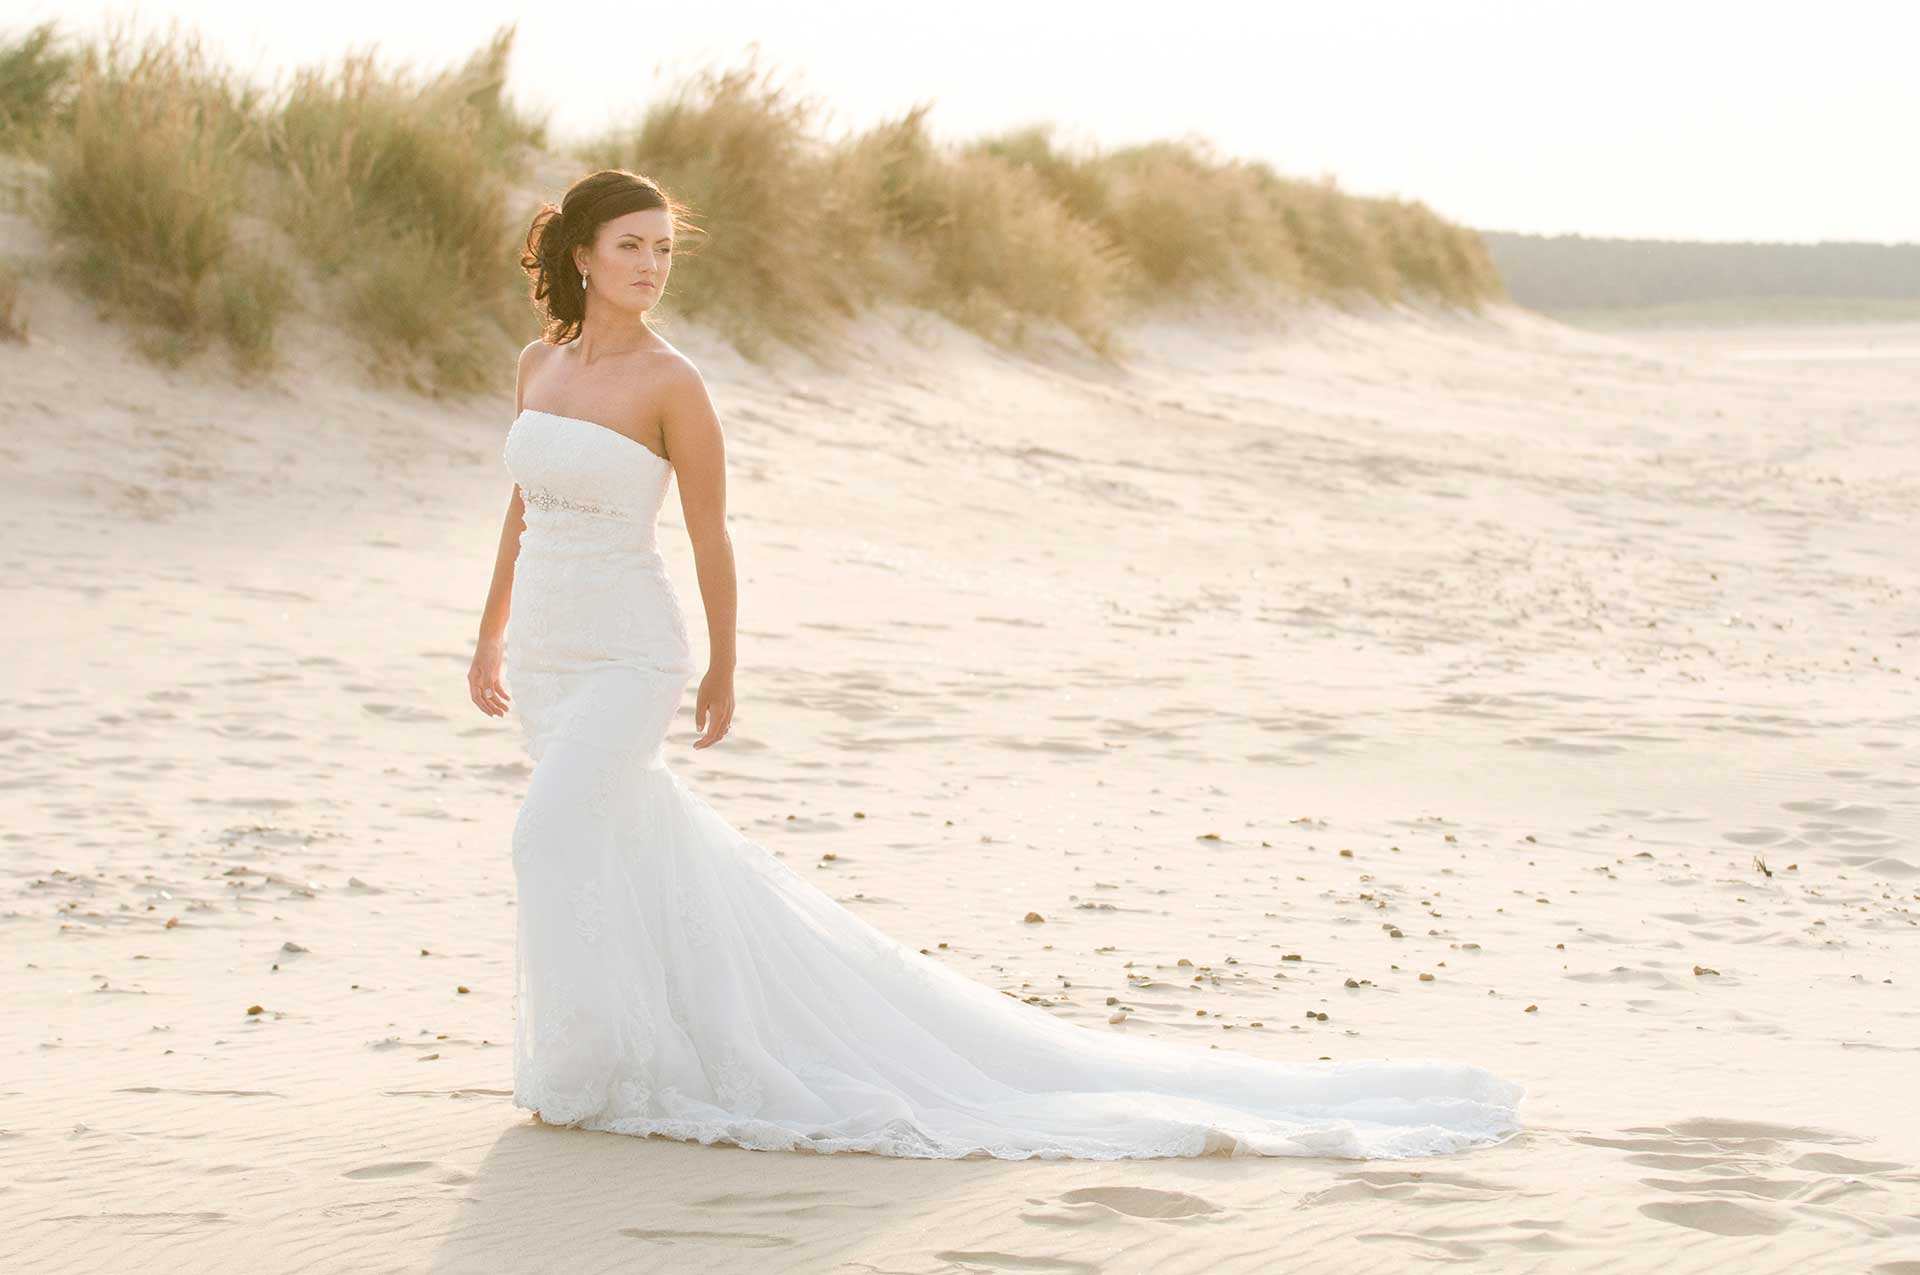 Bridal fashion shoot on Holkham beach sand dunes